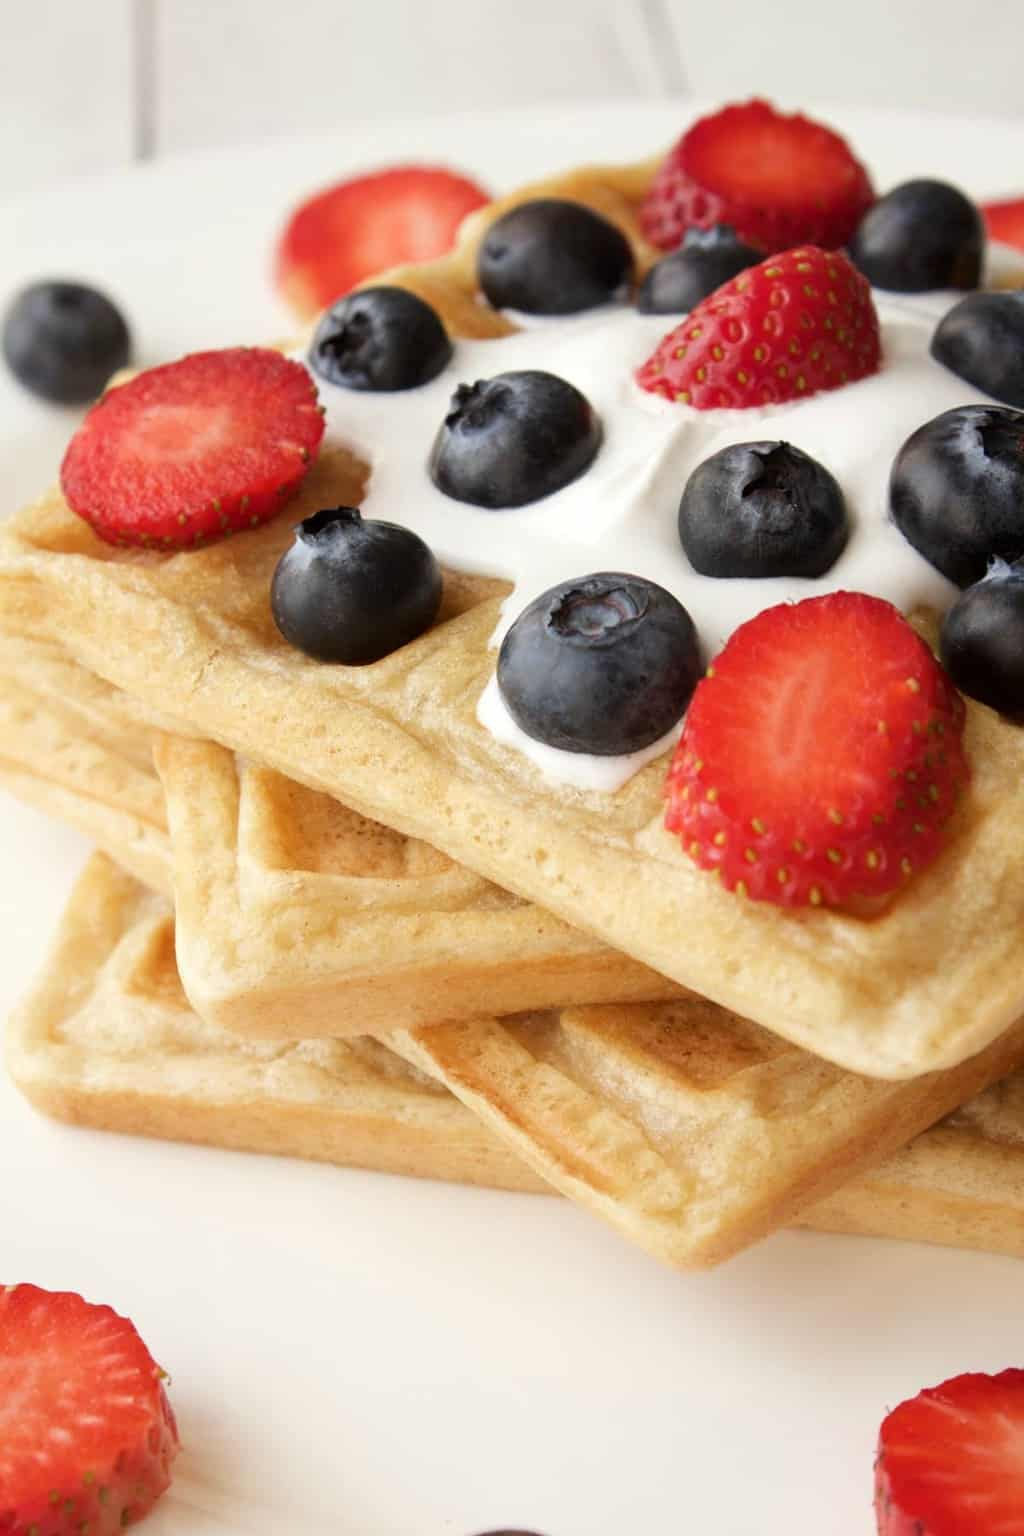 Vegan waffles topped with vegan cream, strawberries and blueberries on a white plate.